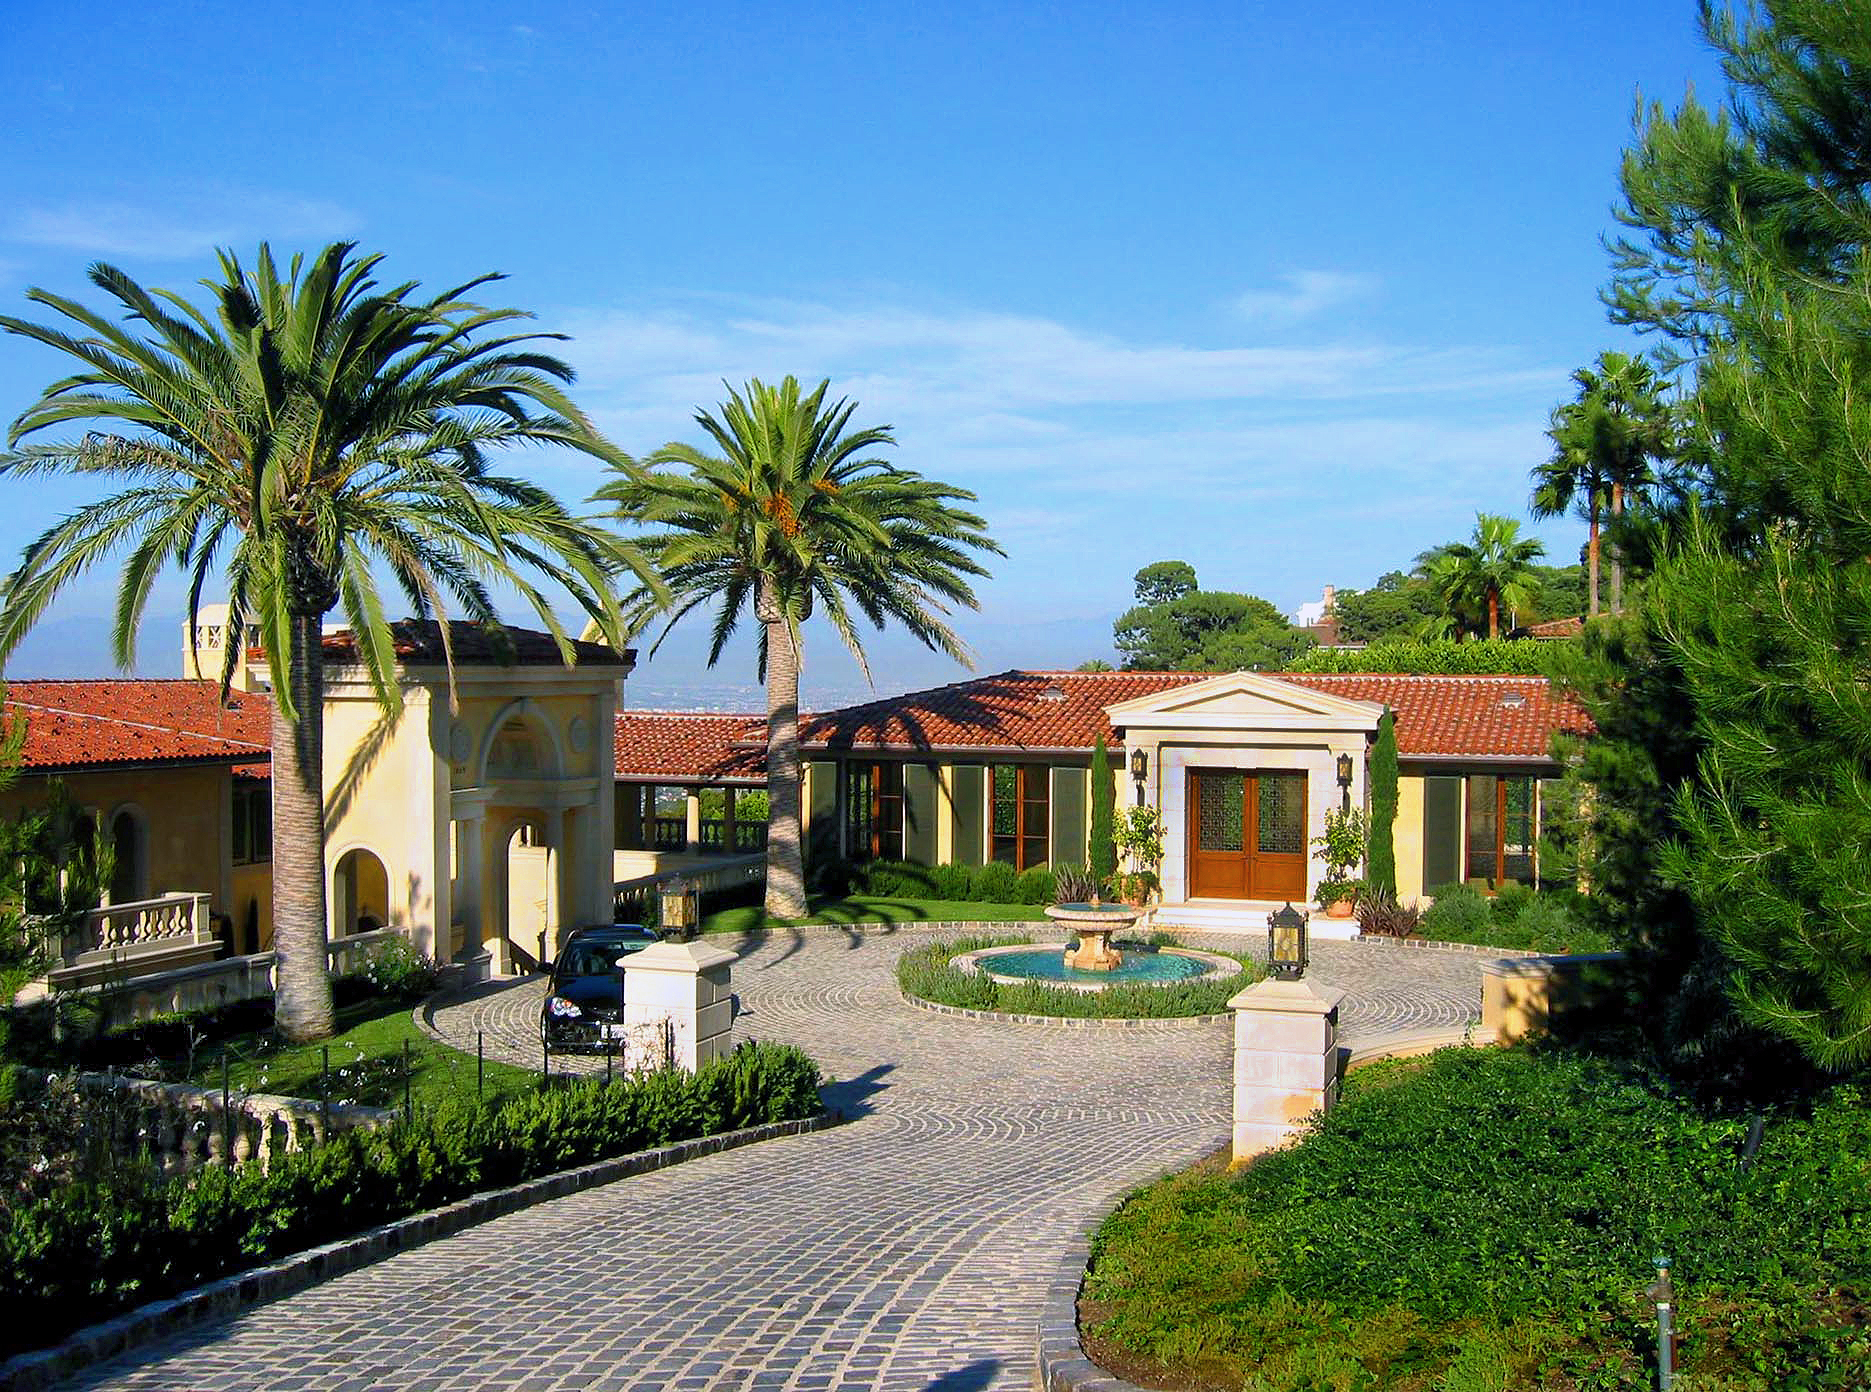 Private Estate Garden - Palos Verdes Estates, CA